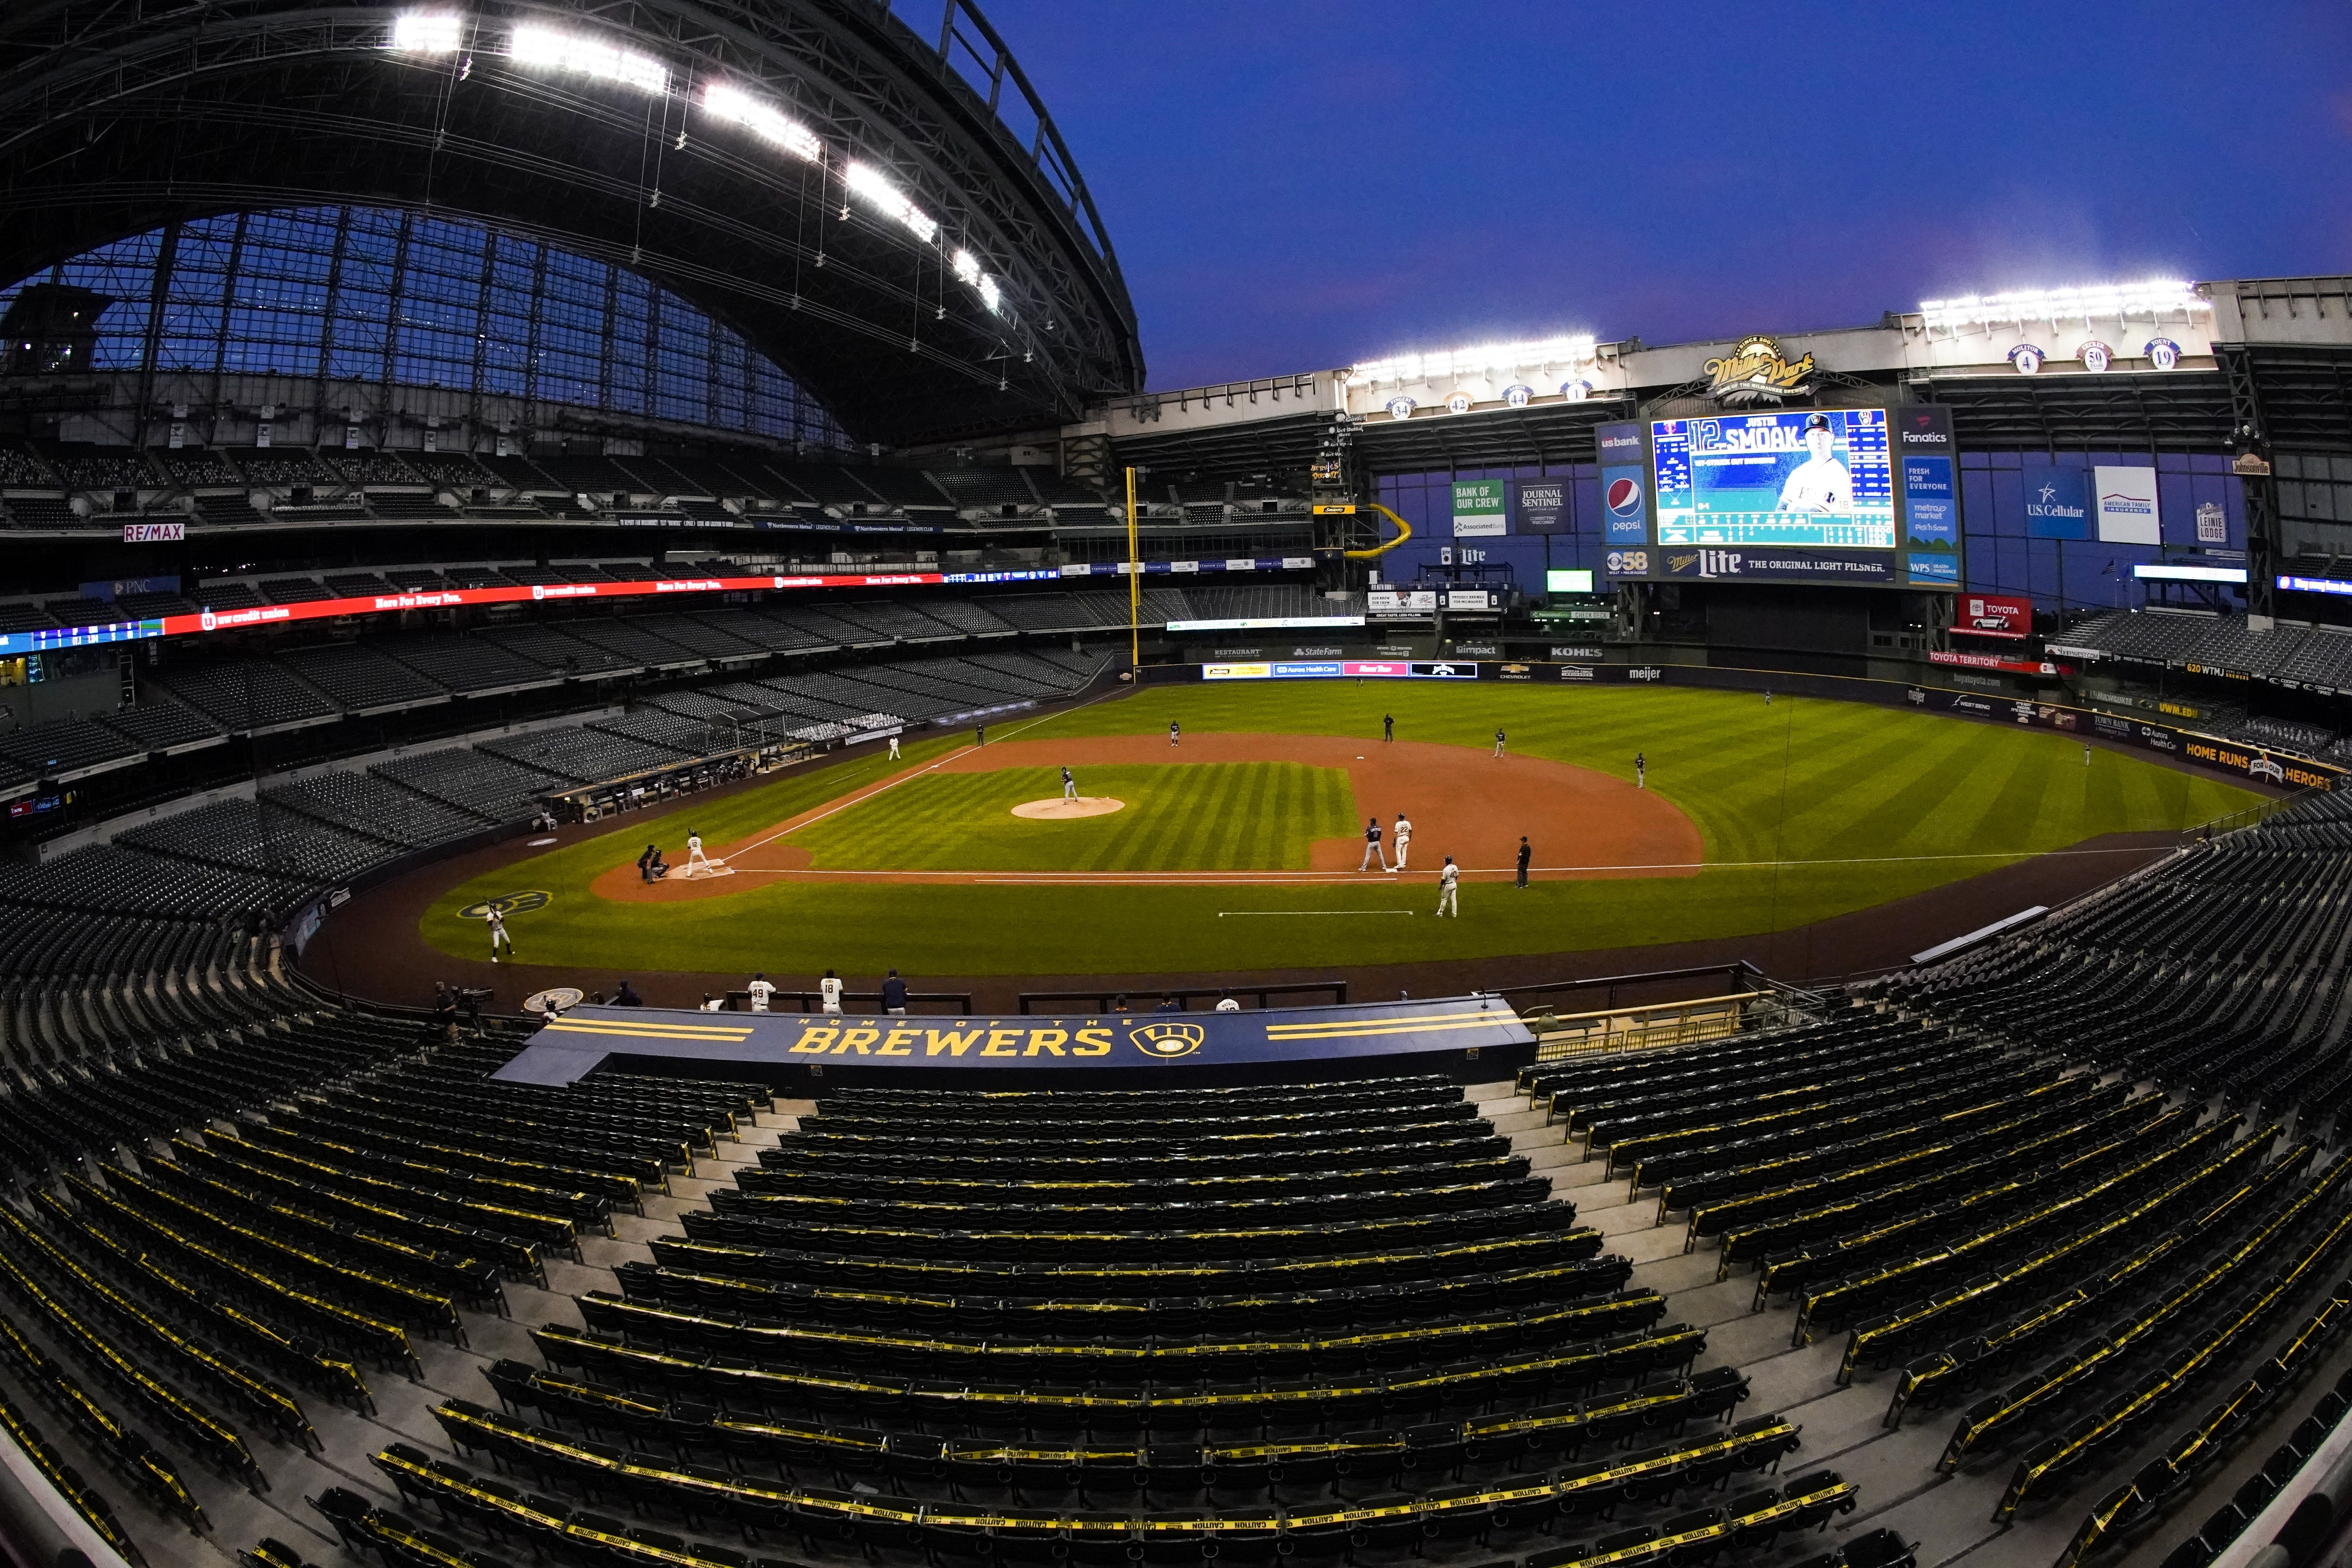 Miller Park at night with empty seats.